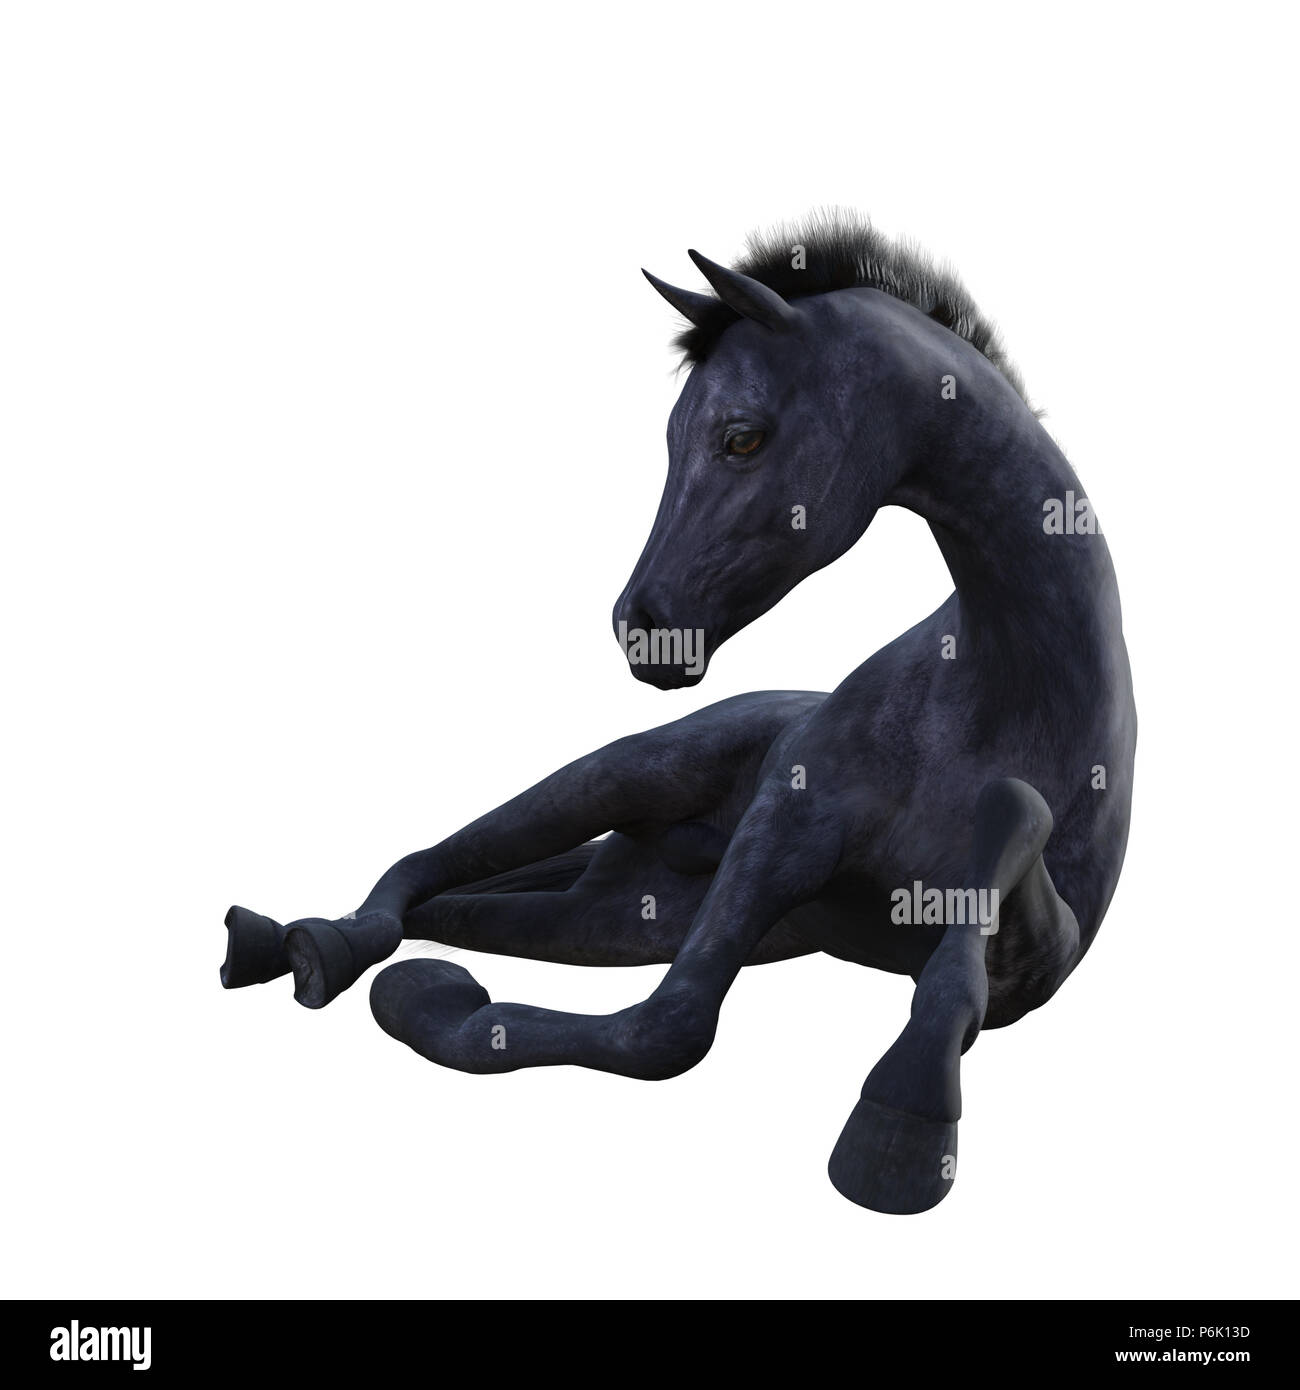 Black Foal Baby Horse Isolated On White 3d Render Stock Photo Alamy